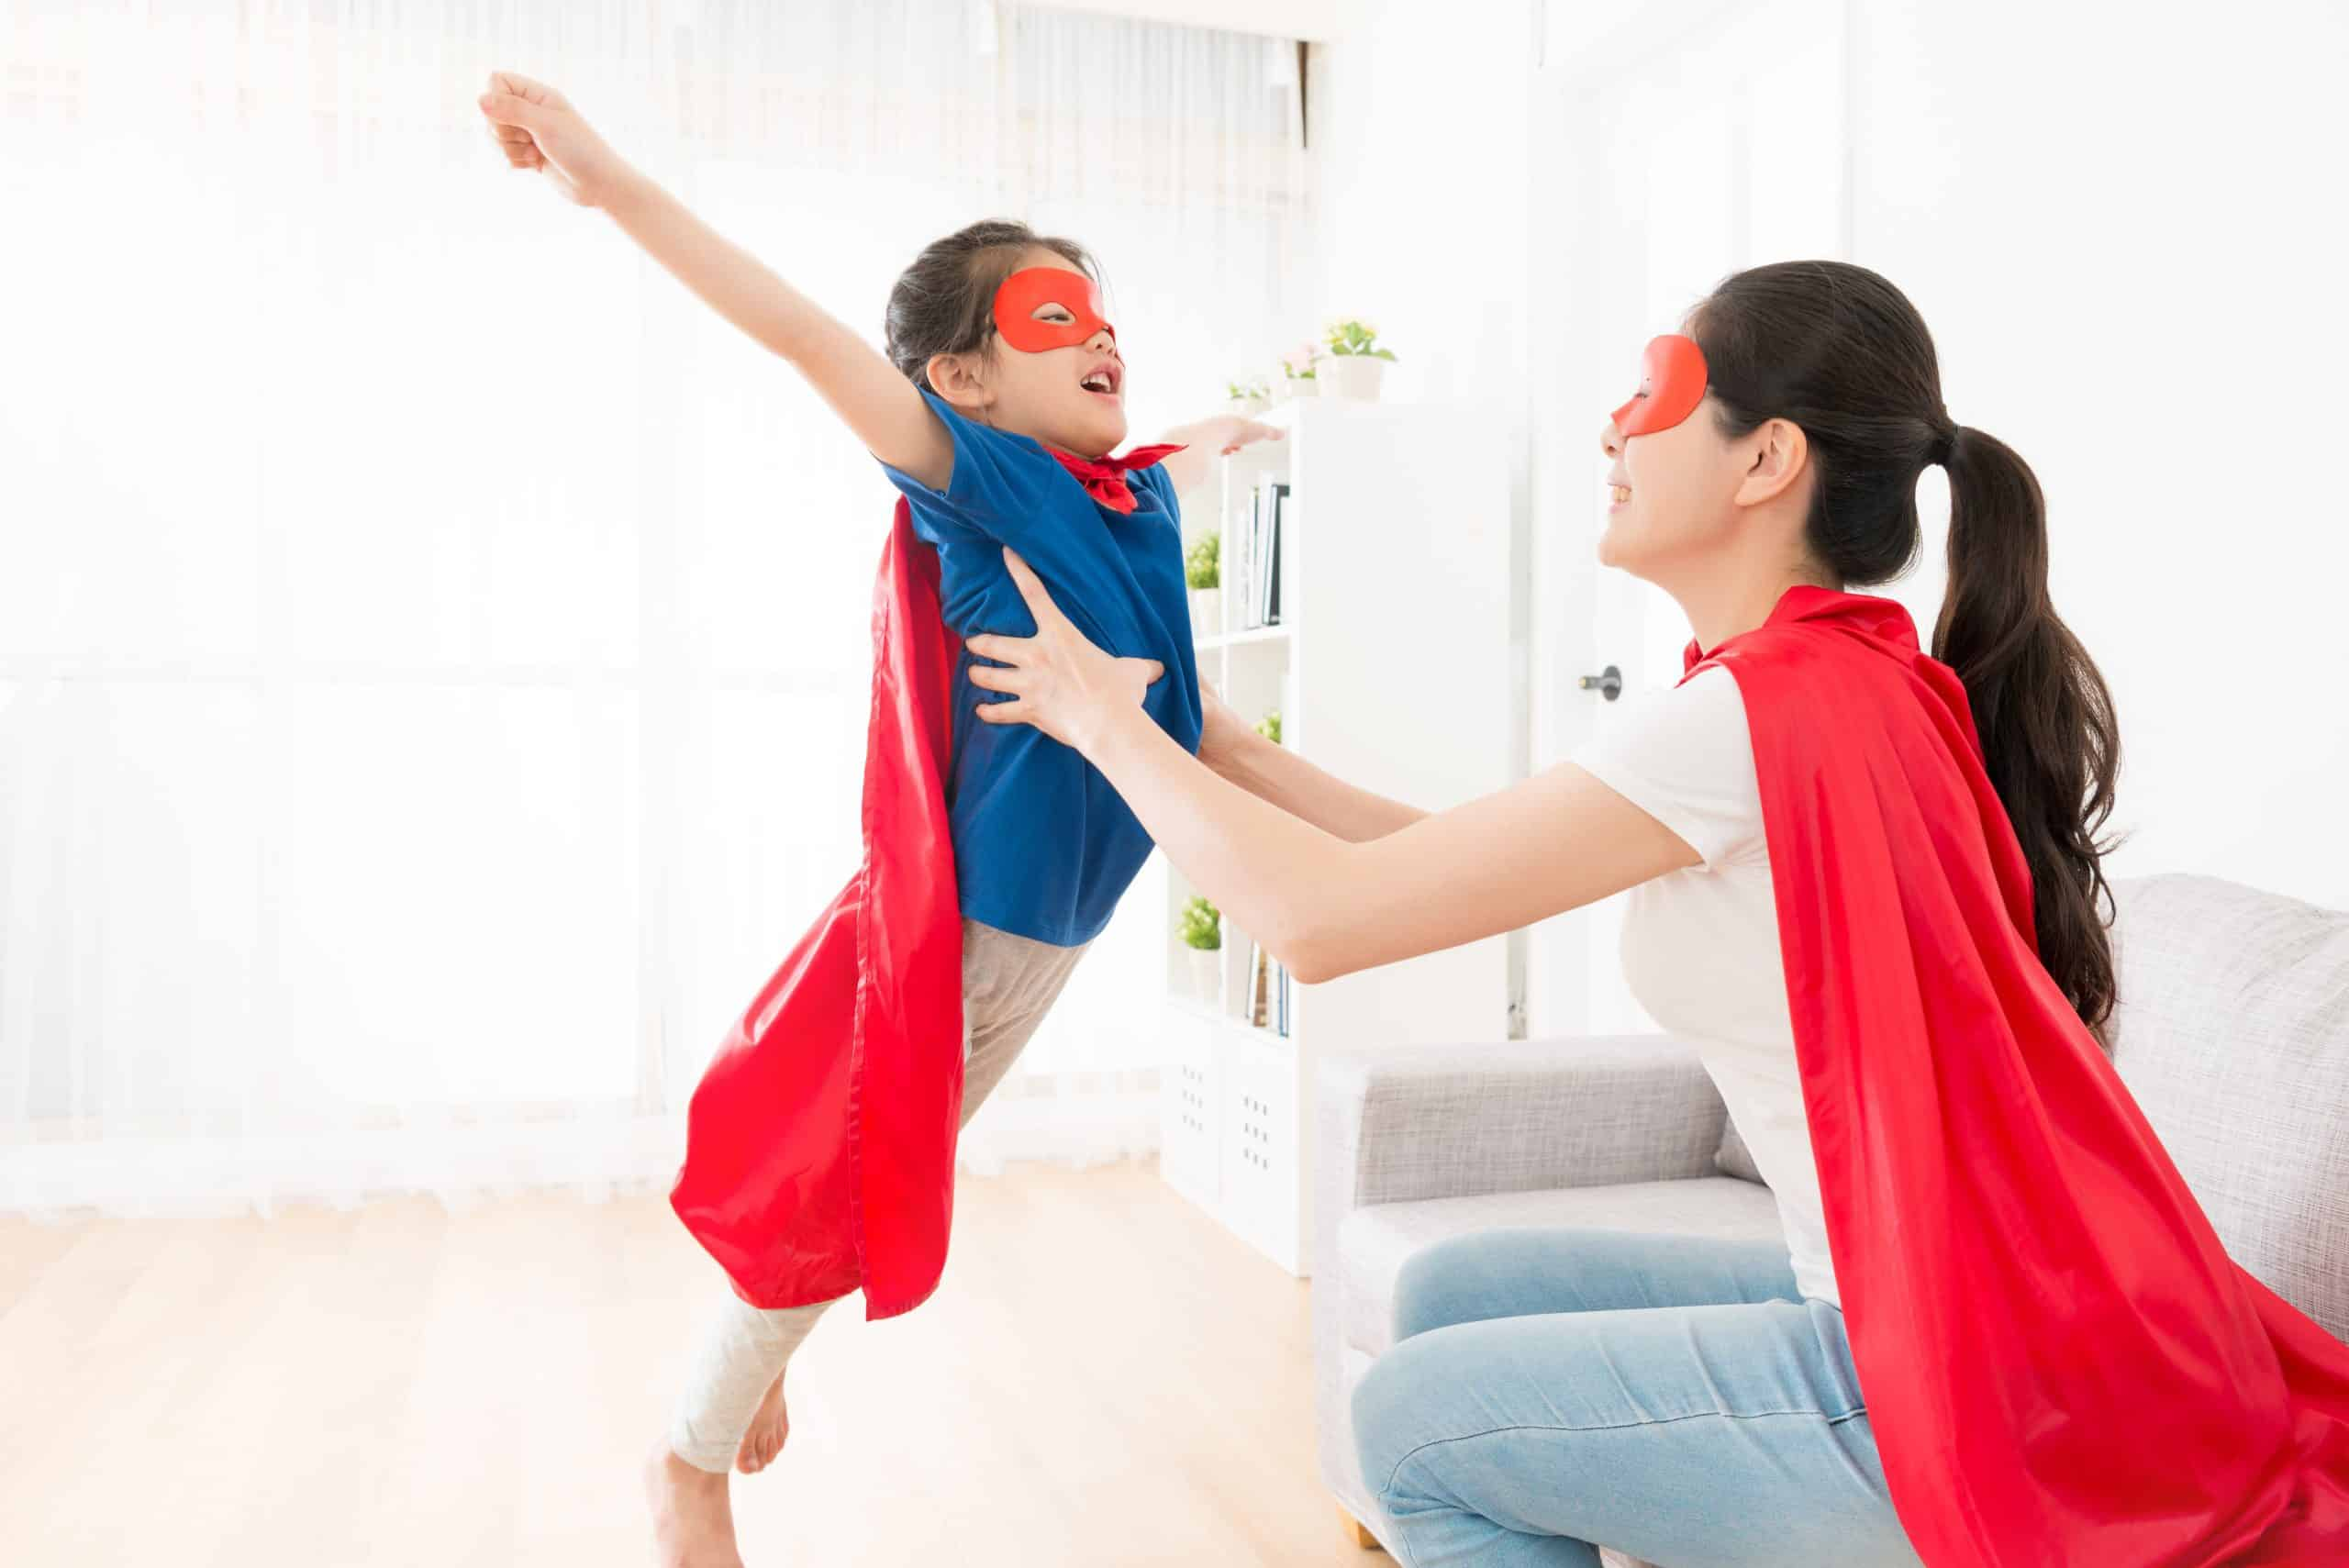 mom and girl playing superhero, kids creative activities at home